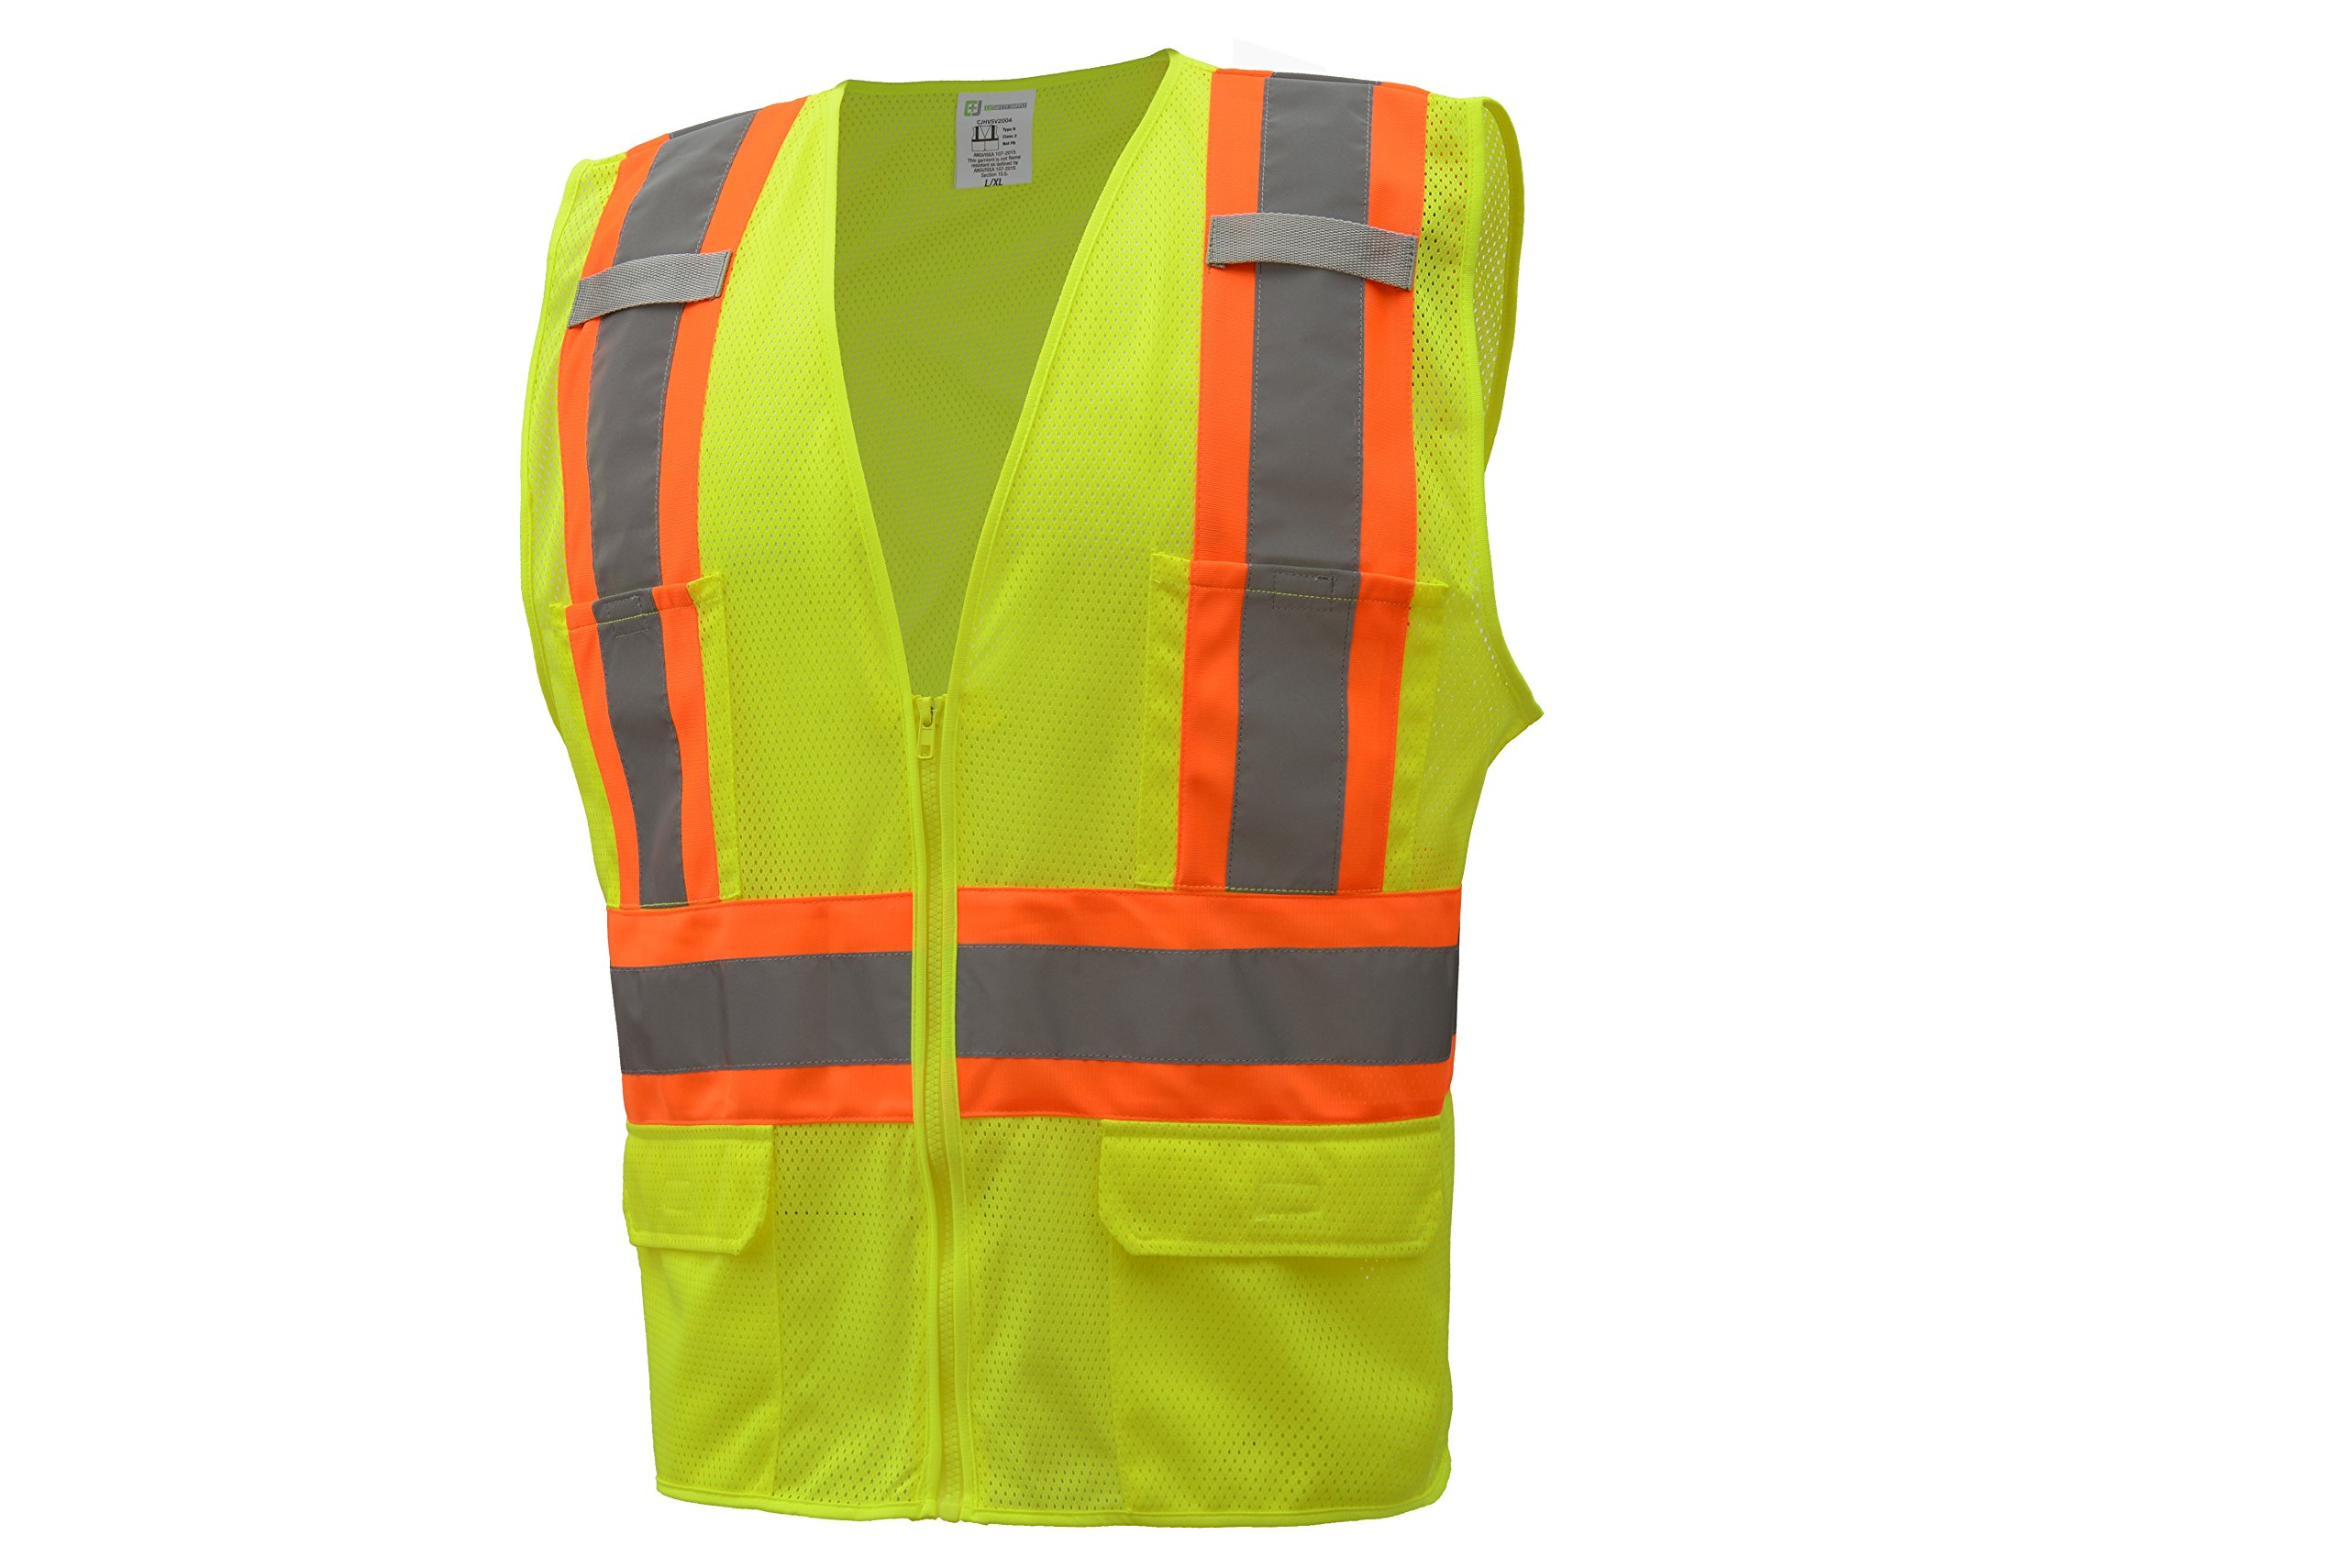 CJ Safety CJHVSV2003 ANSI Class 2 High Visibility Two Tone Safety Vest Wicking Breathable Mesh (5XL, Green)